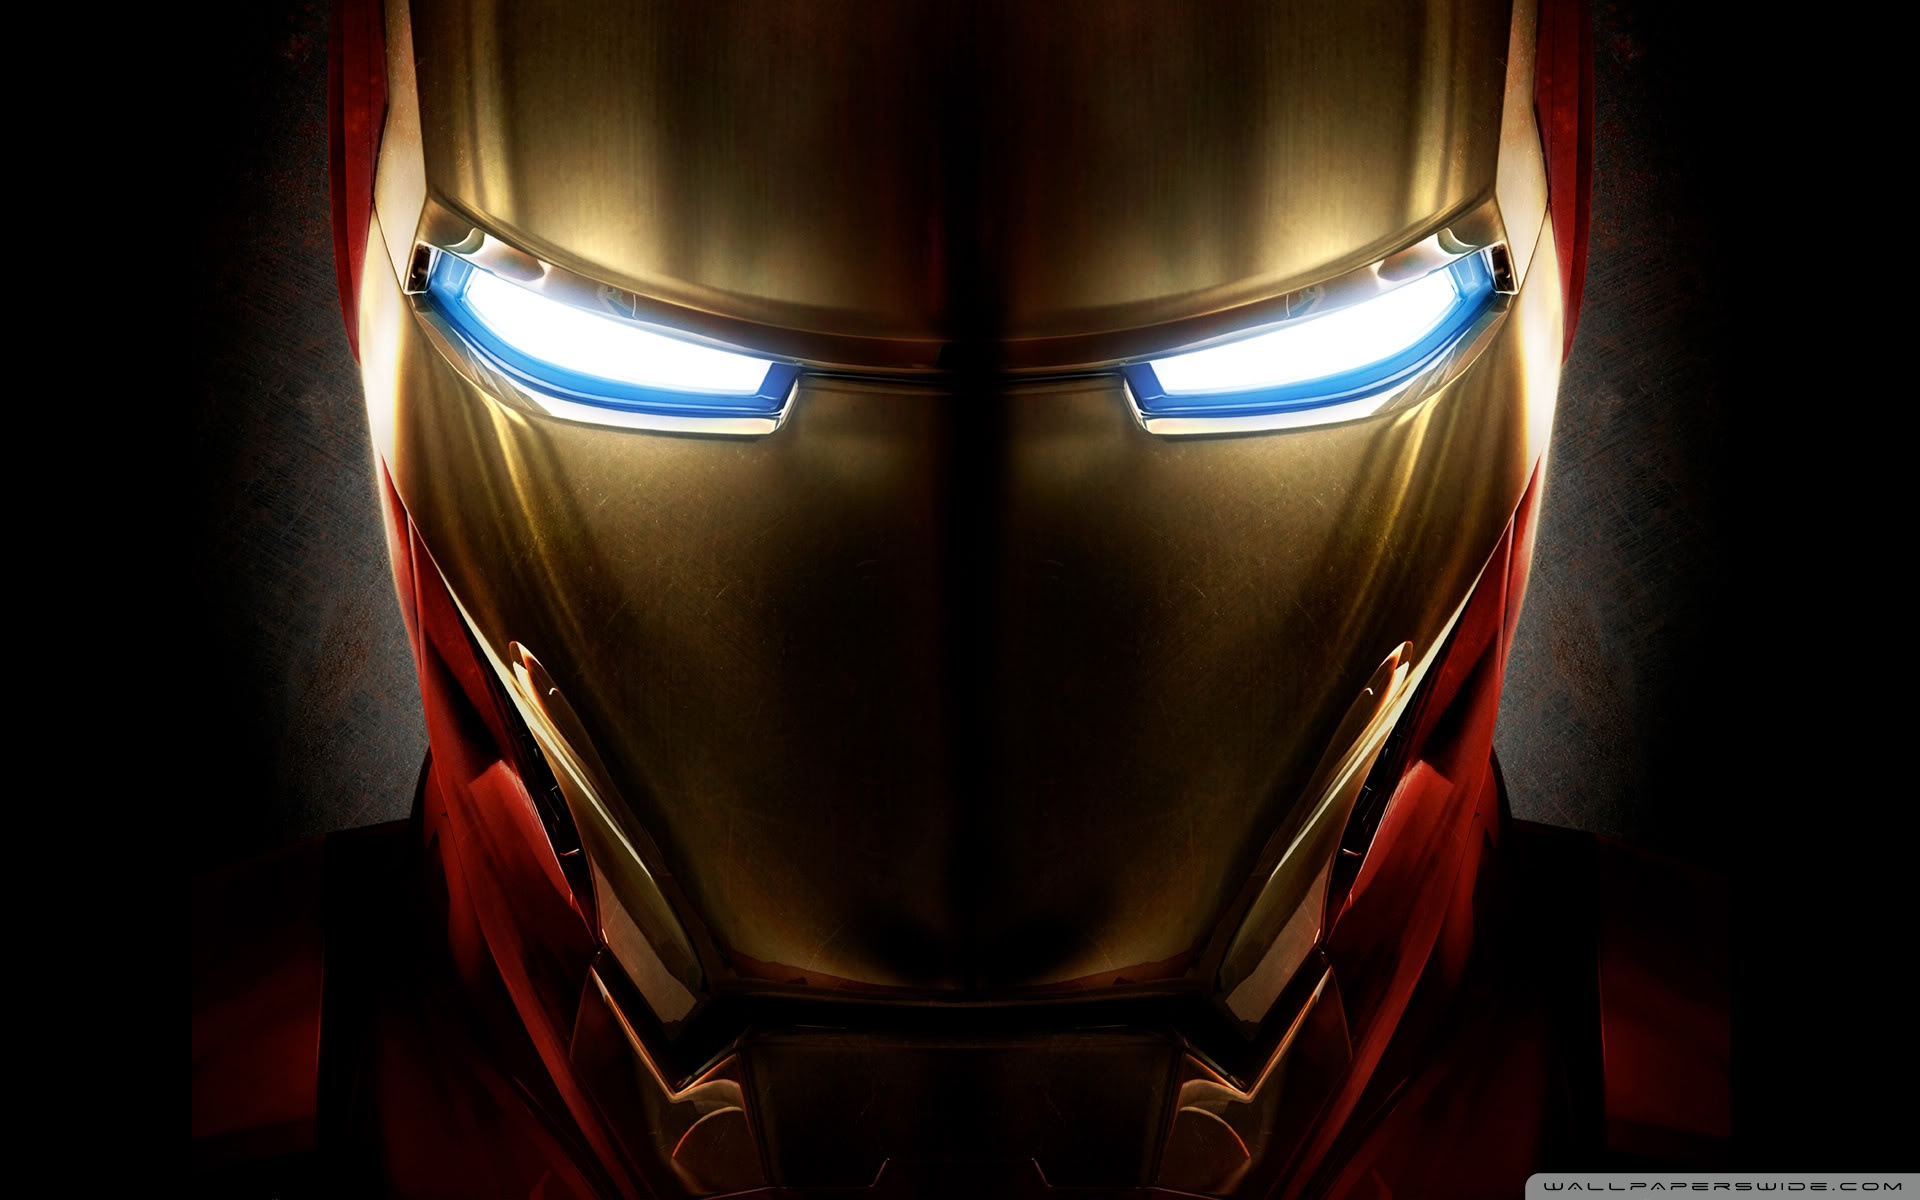 WallpapersWide.com Iron Man HD Desktop Wallpapers for 4K